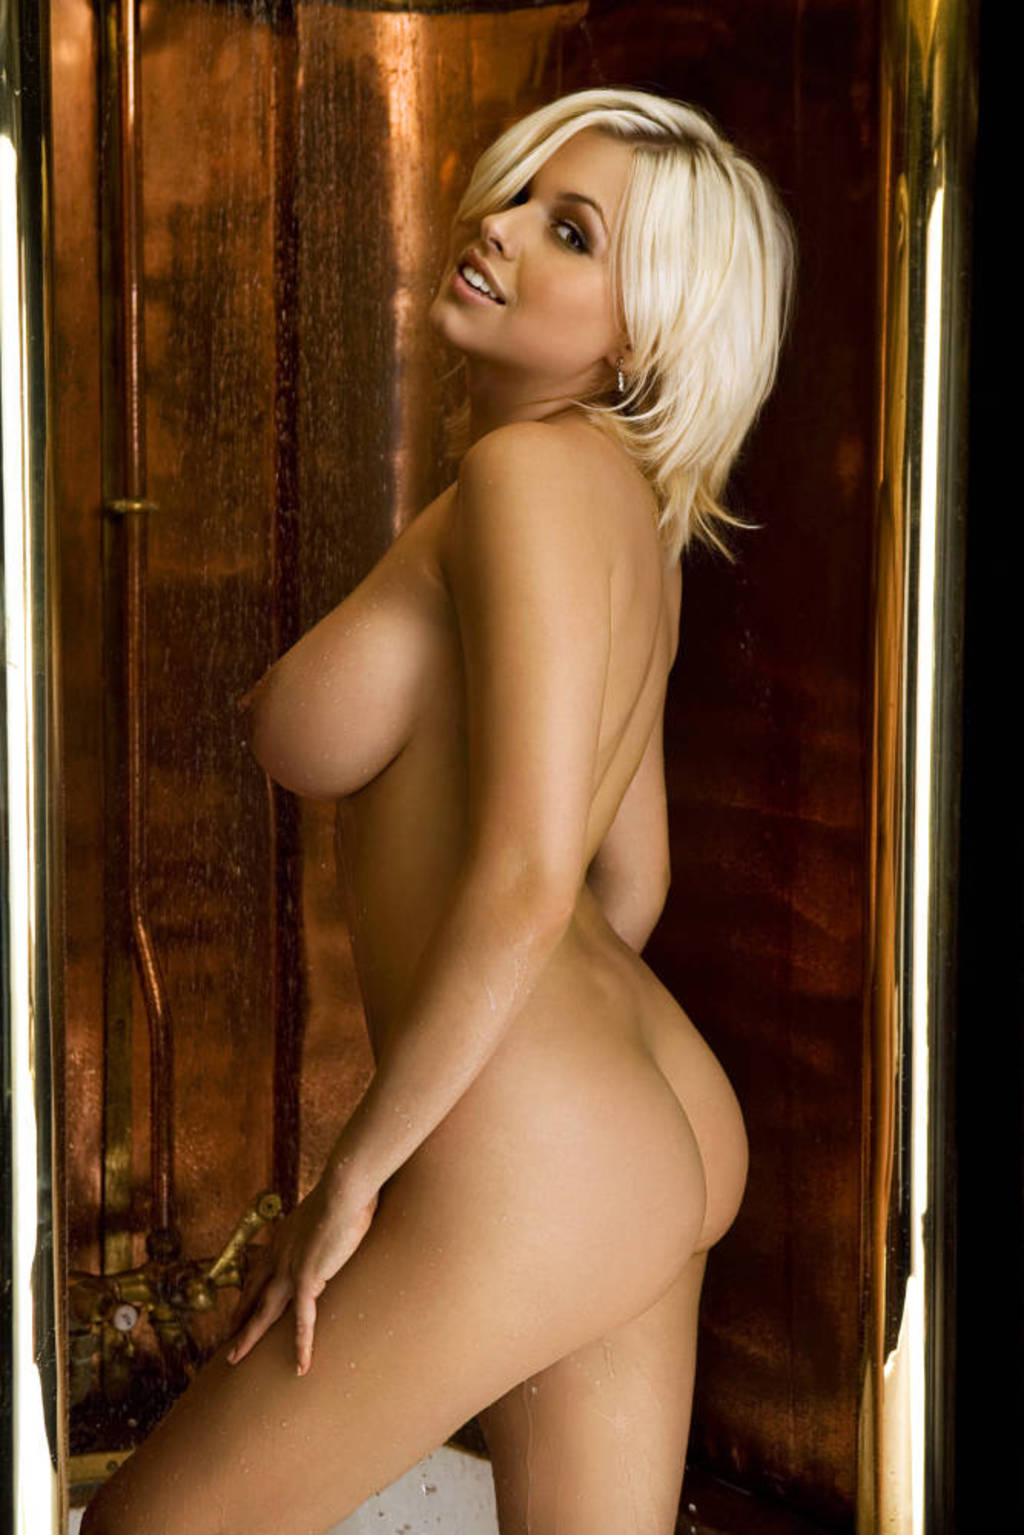 blonde by copper pipes.jpg